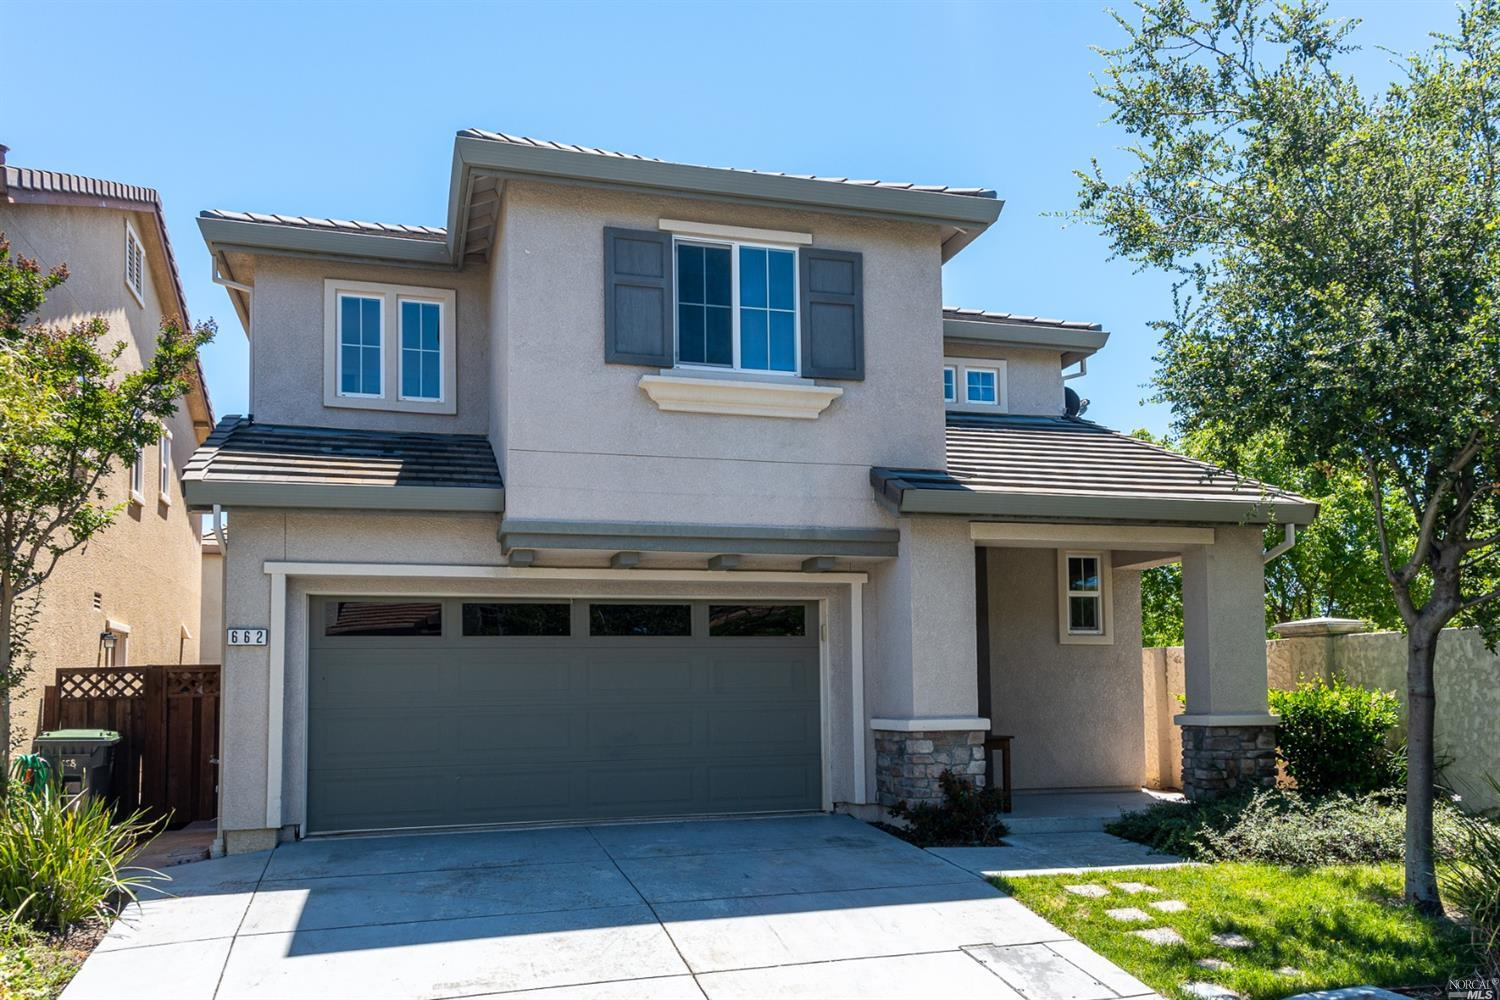 Quiet home at the end of a cul-de-sac.  This ready to move in 3 BR, 2 1/2 BA 1,722 sq ft home offers